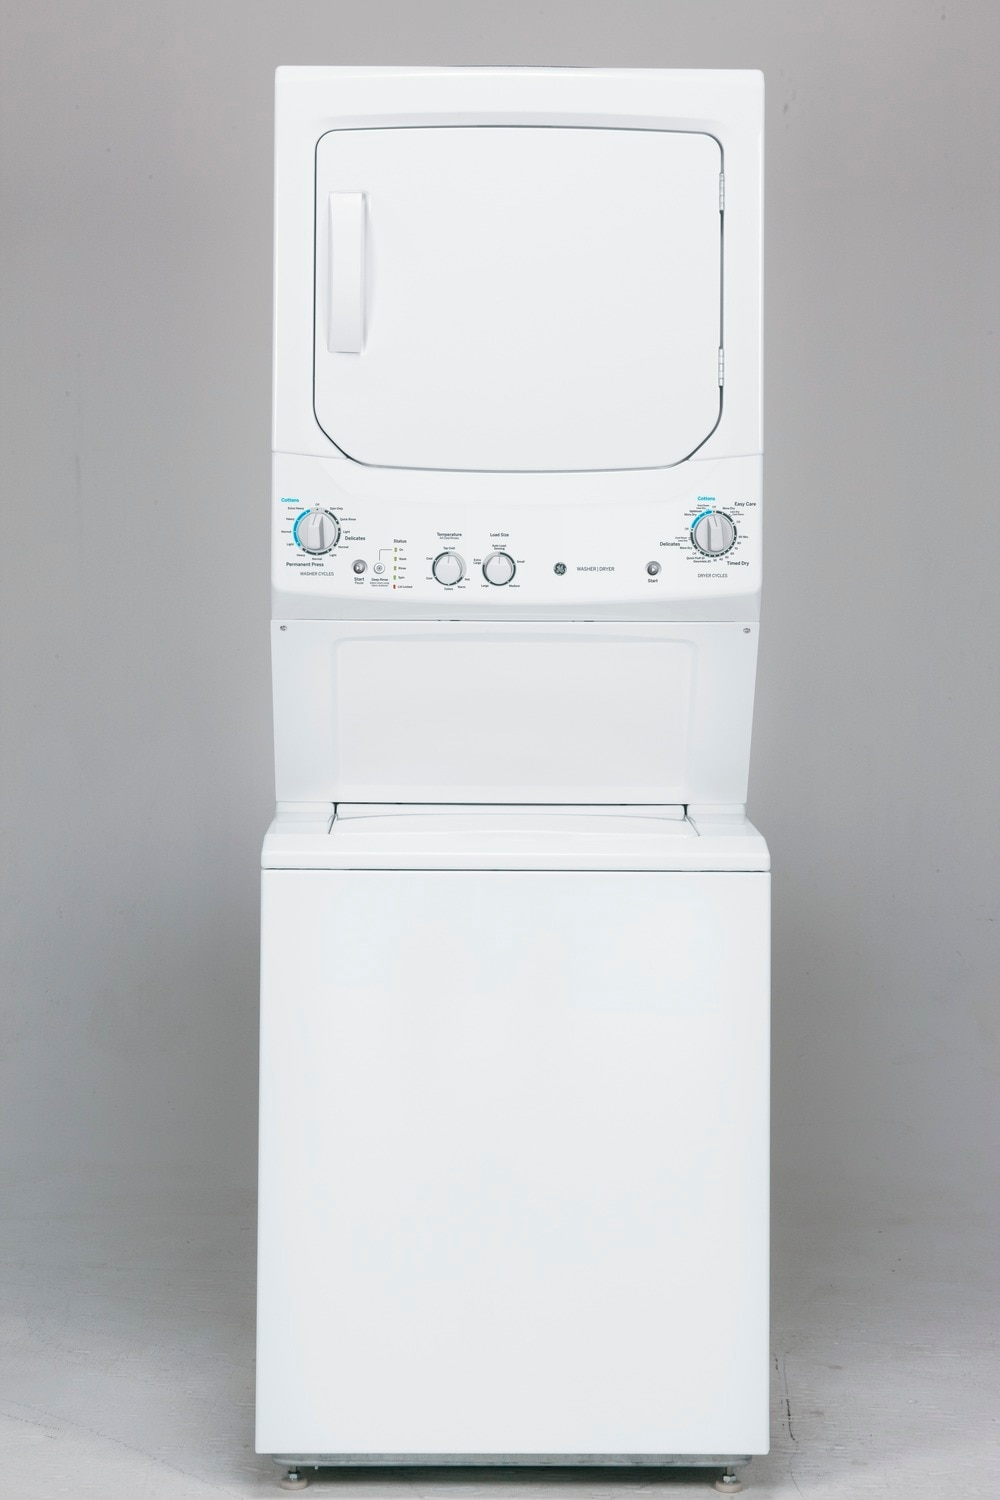 GE White Unitized Spacemaker Washer and Electric Dryer - GUD27ESMJWW